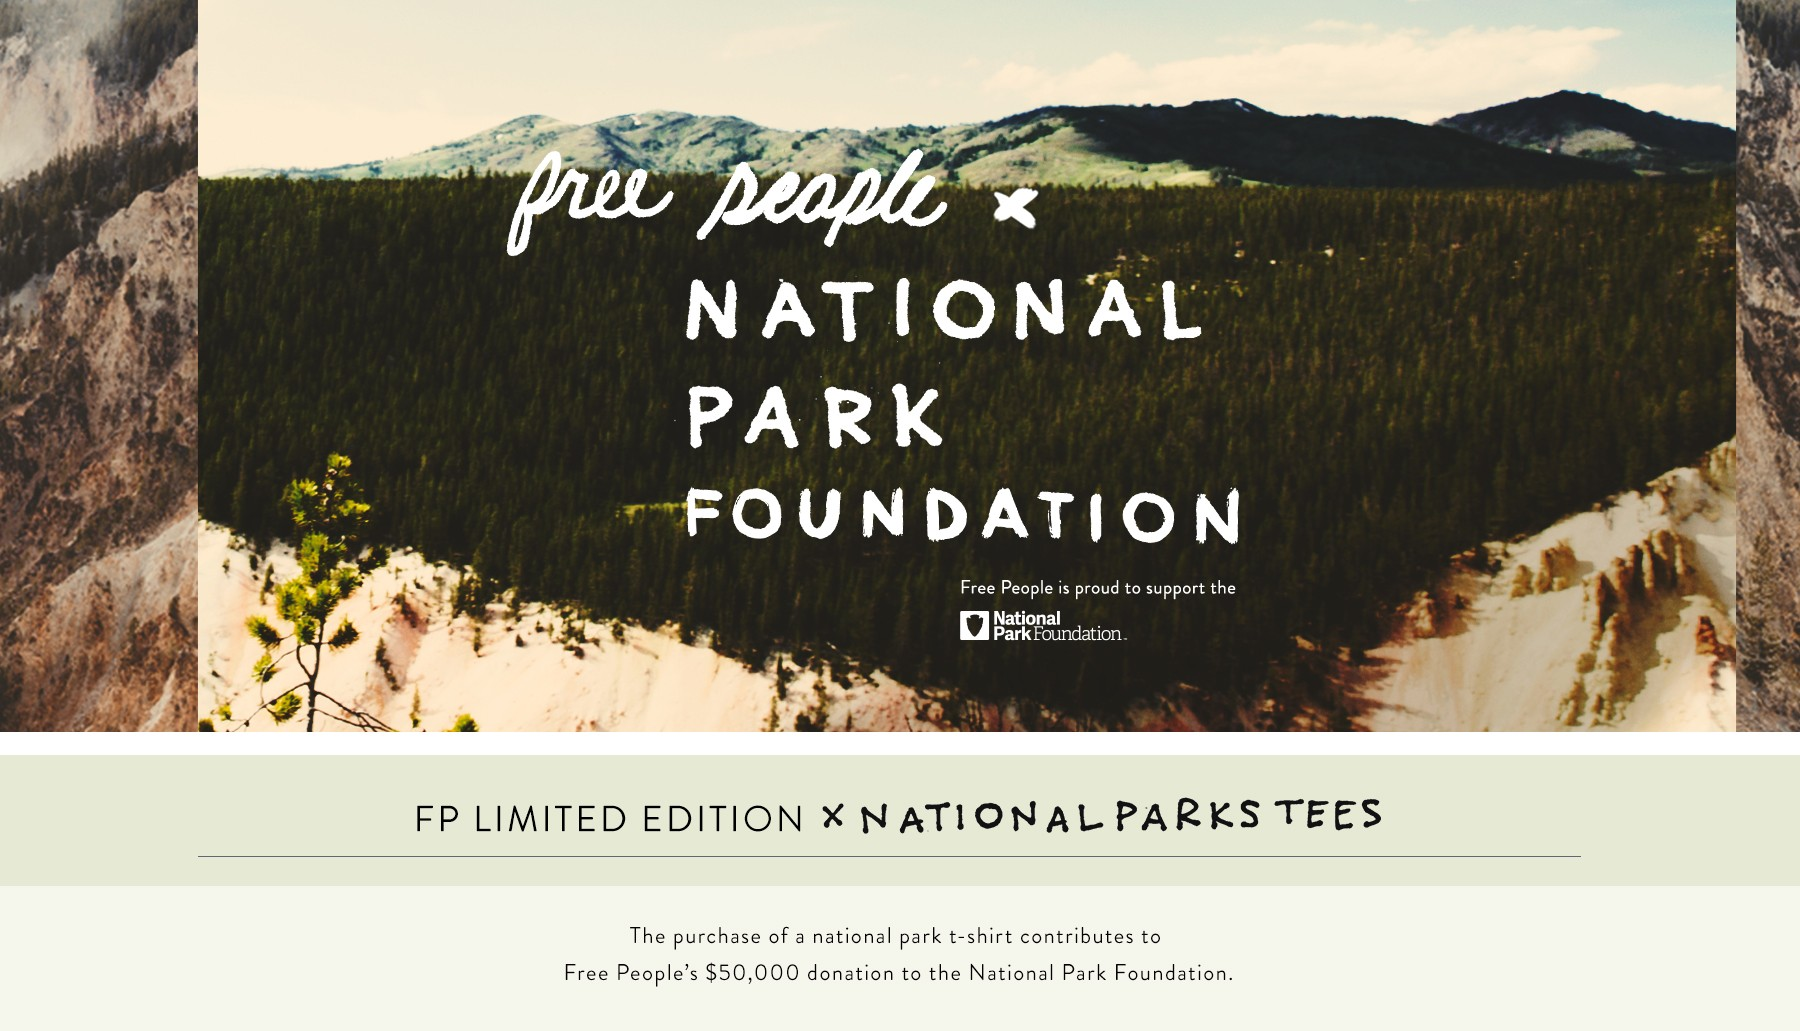 Free People x National Park